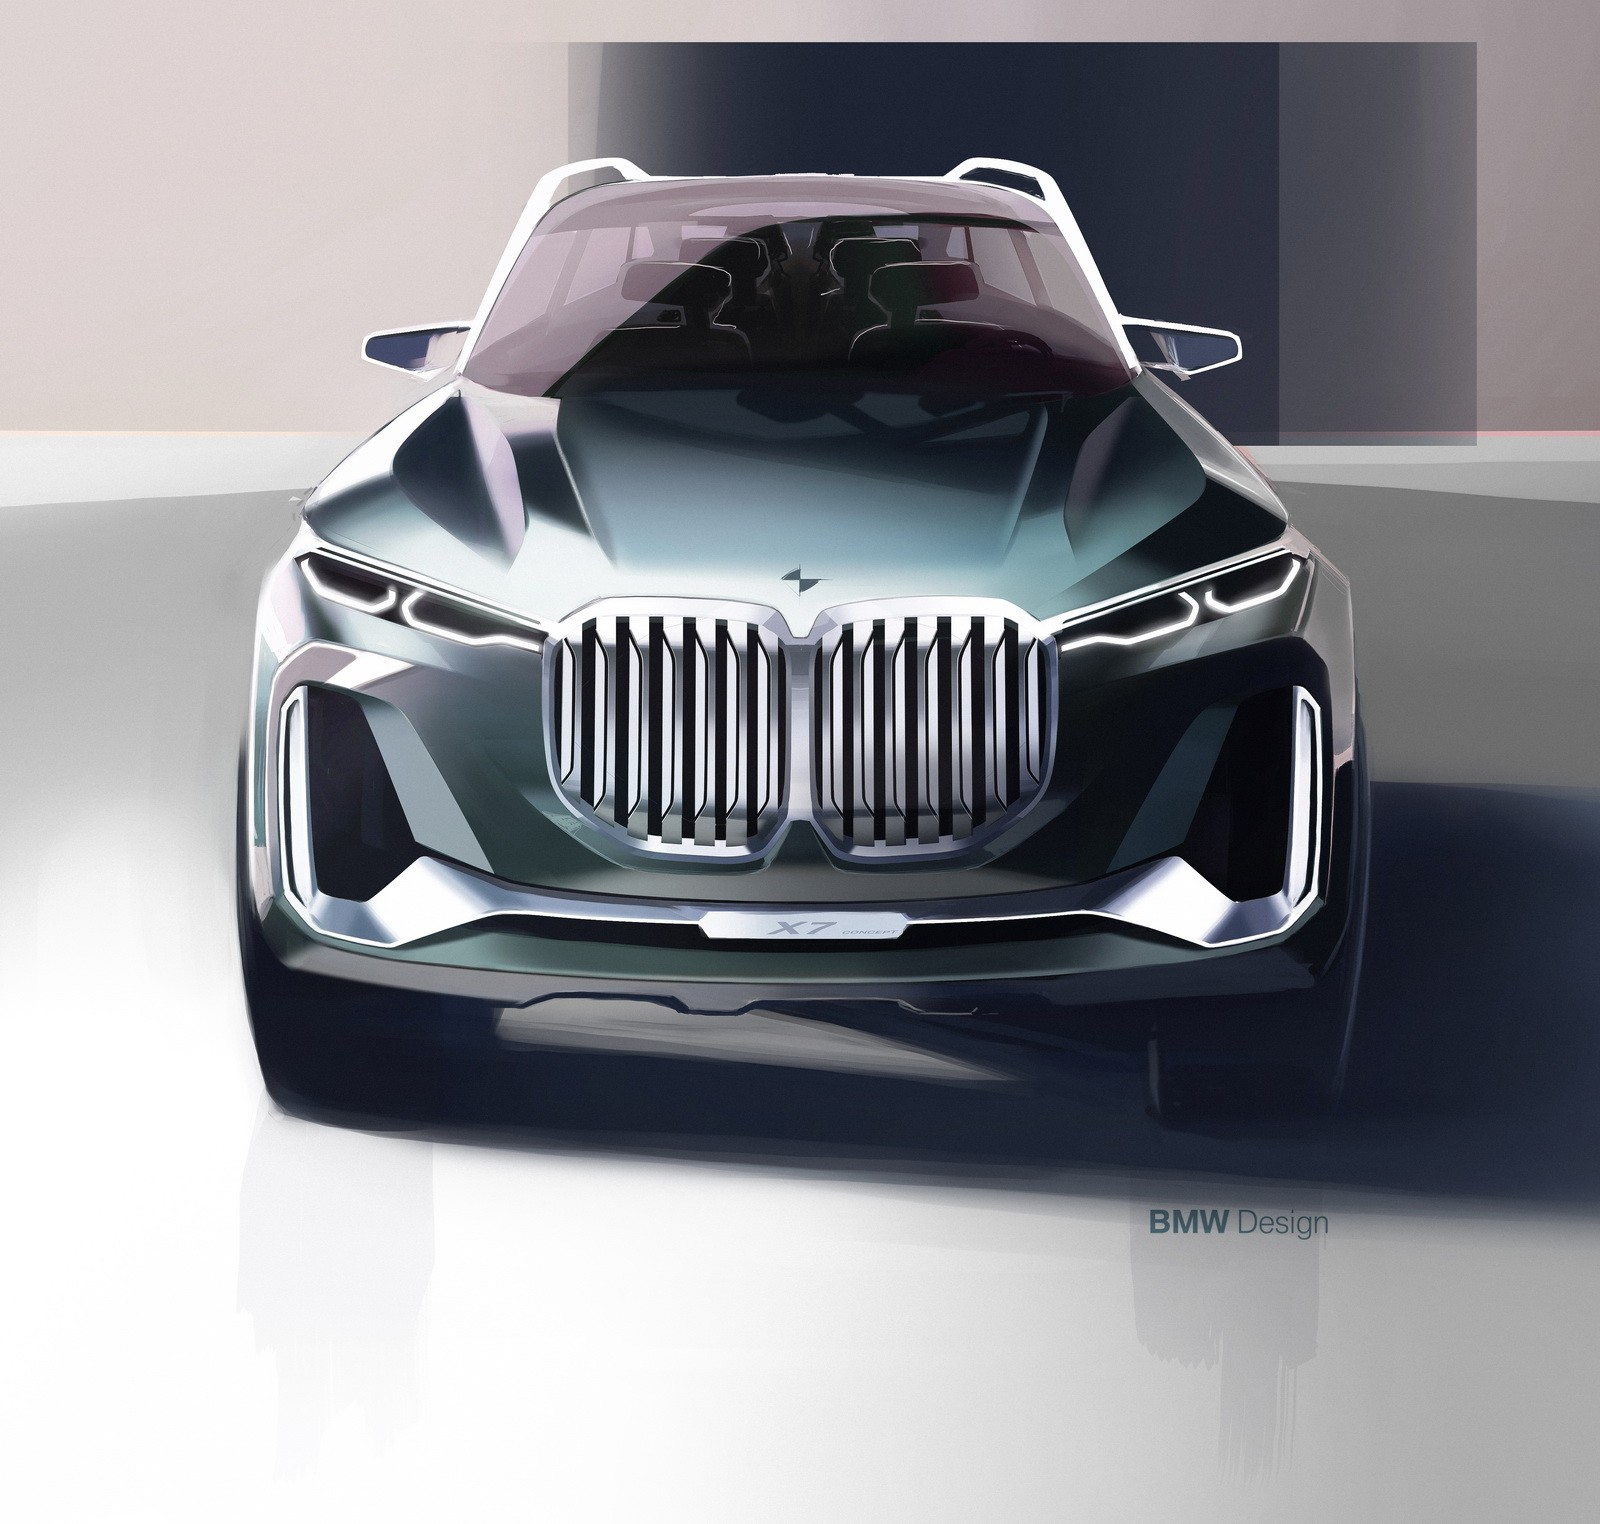 2019 Bmw X7 Sav Edges Closer To Production Concept Looks